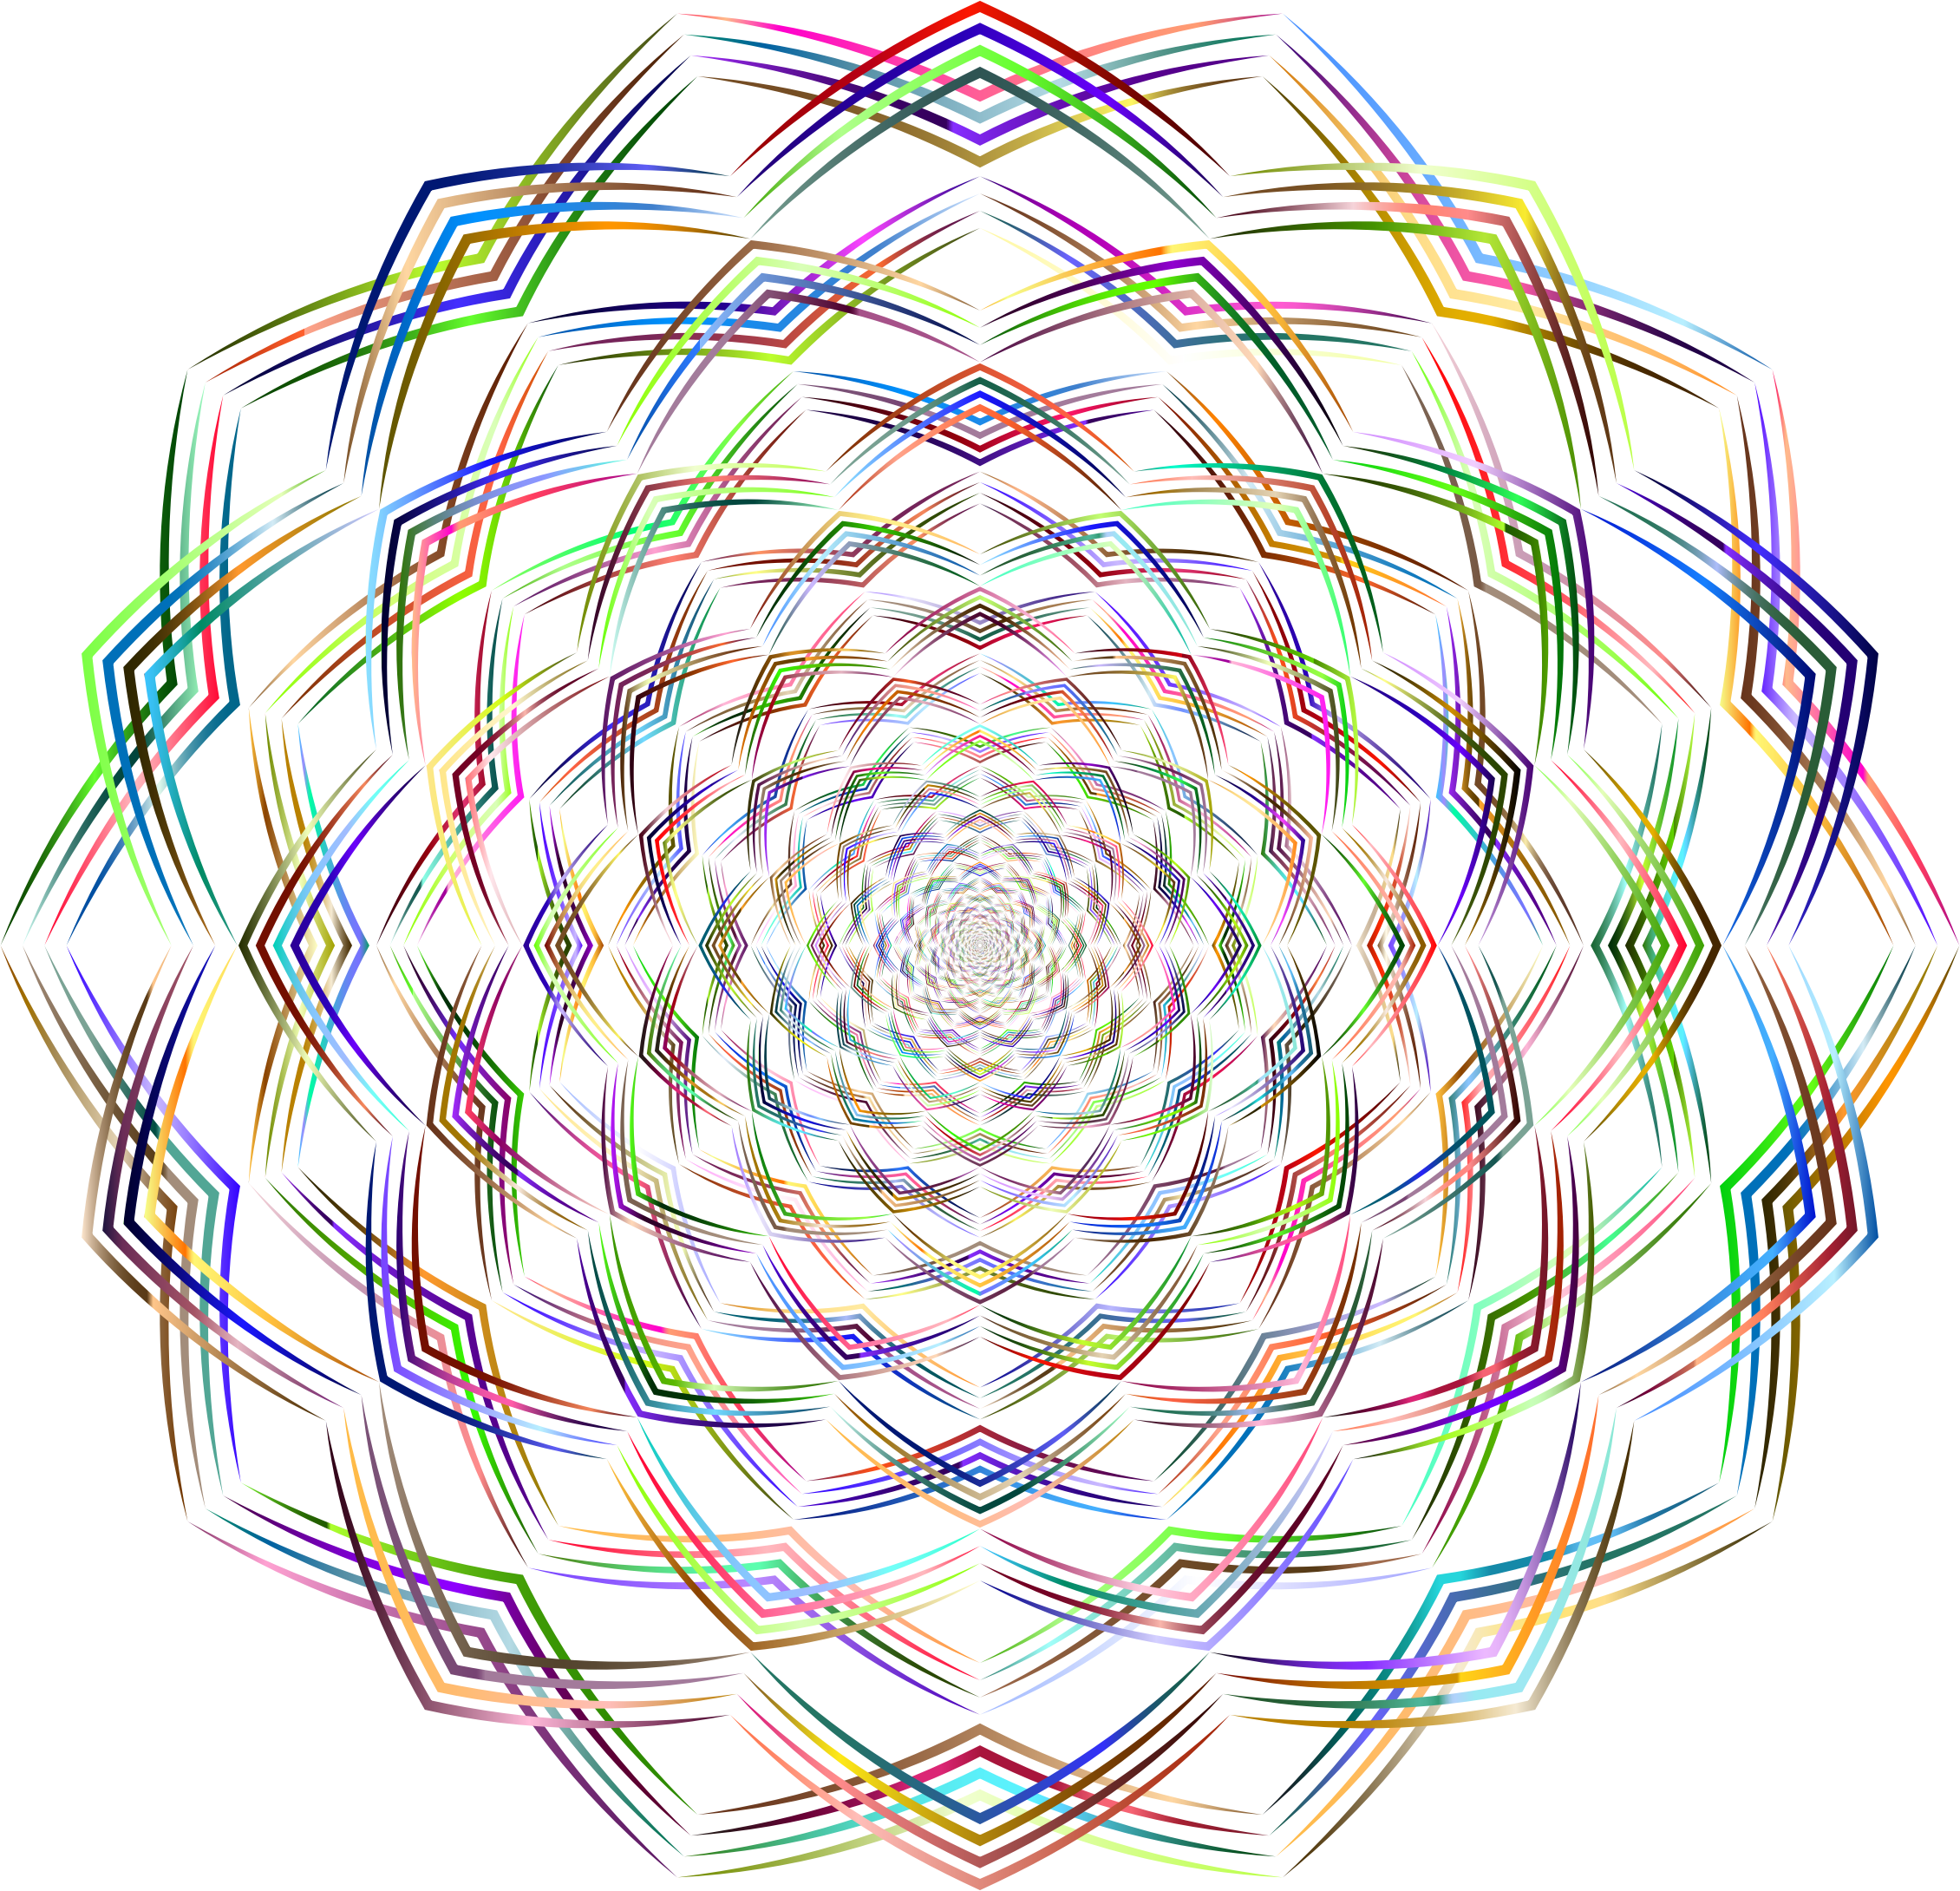 Geometric Lines Vortex Chromatic No BG by GDJ